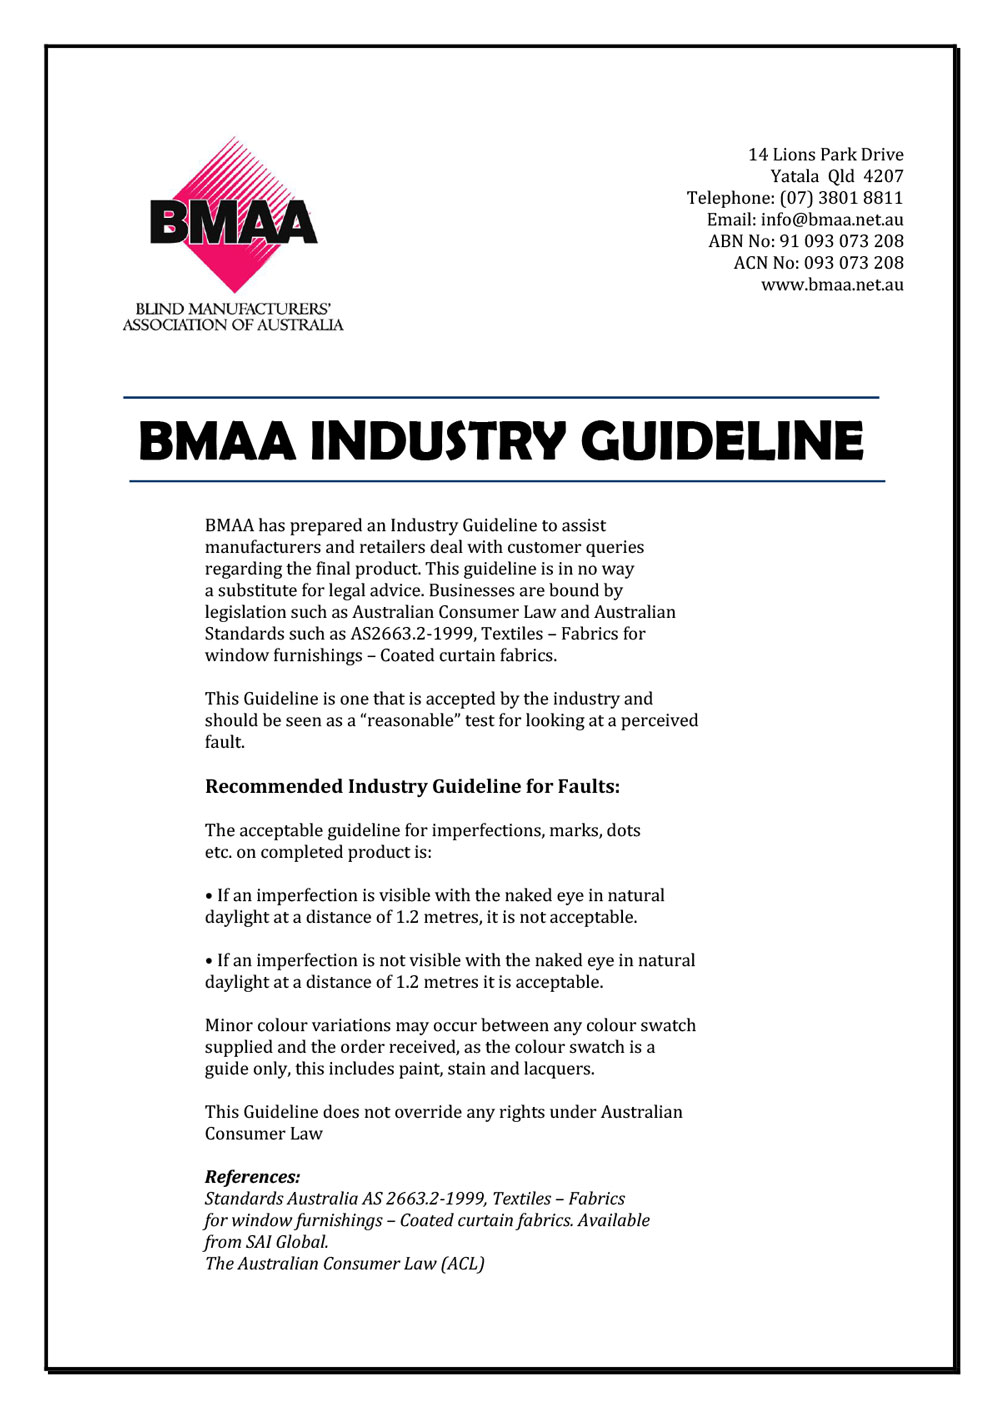 BMAA Guidelines - Recommendations